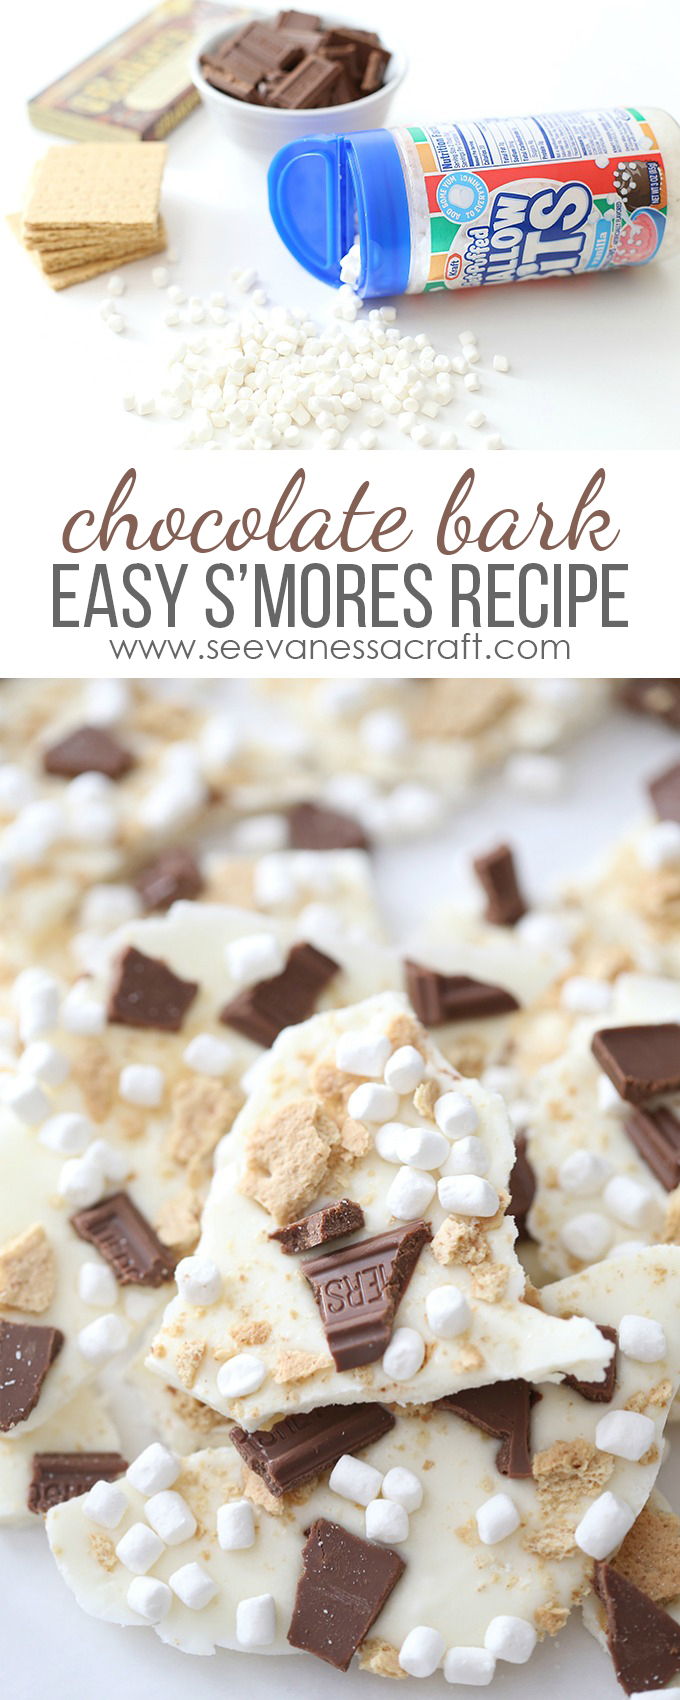 S'mores Chocolate Bark Recipe copy